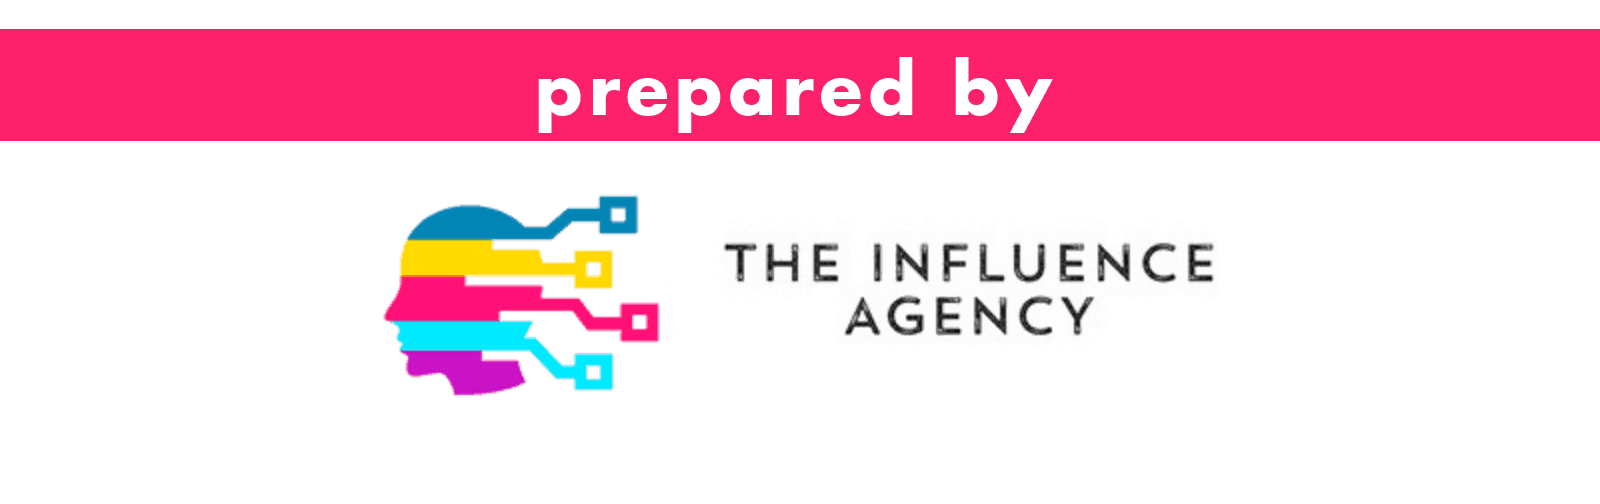 Prepared by The Influence Agency